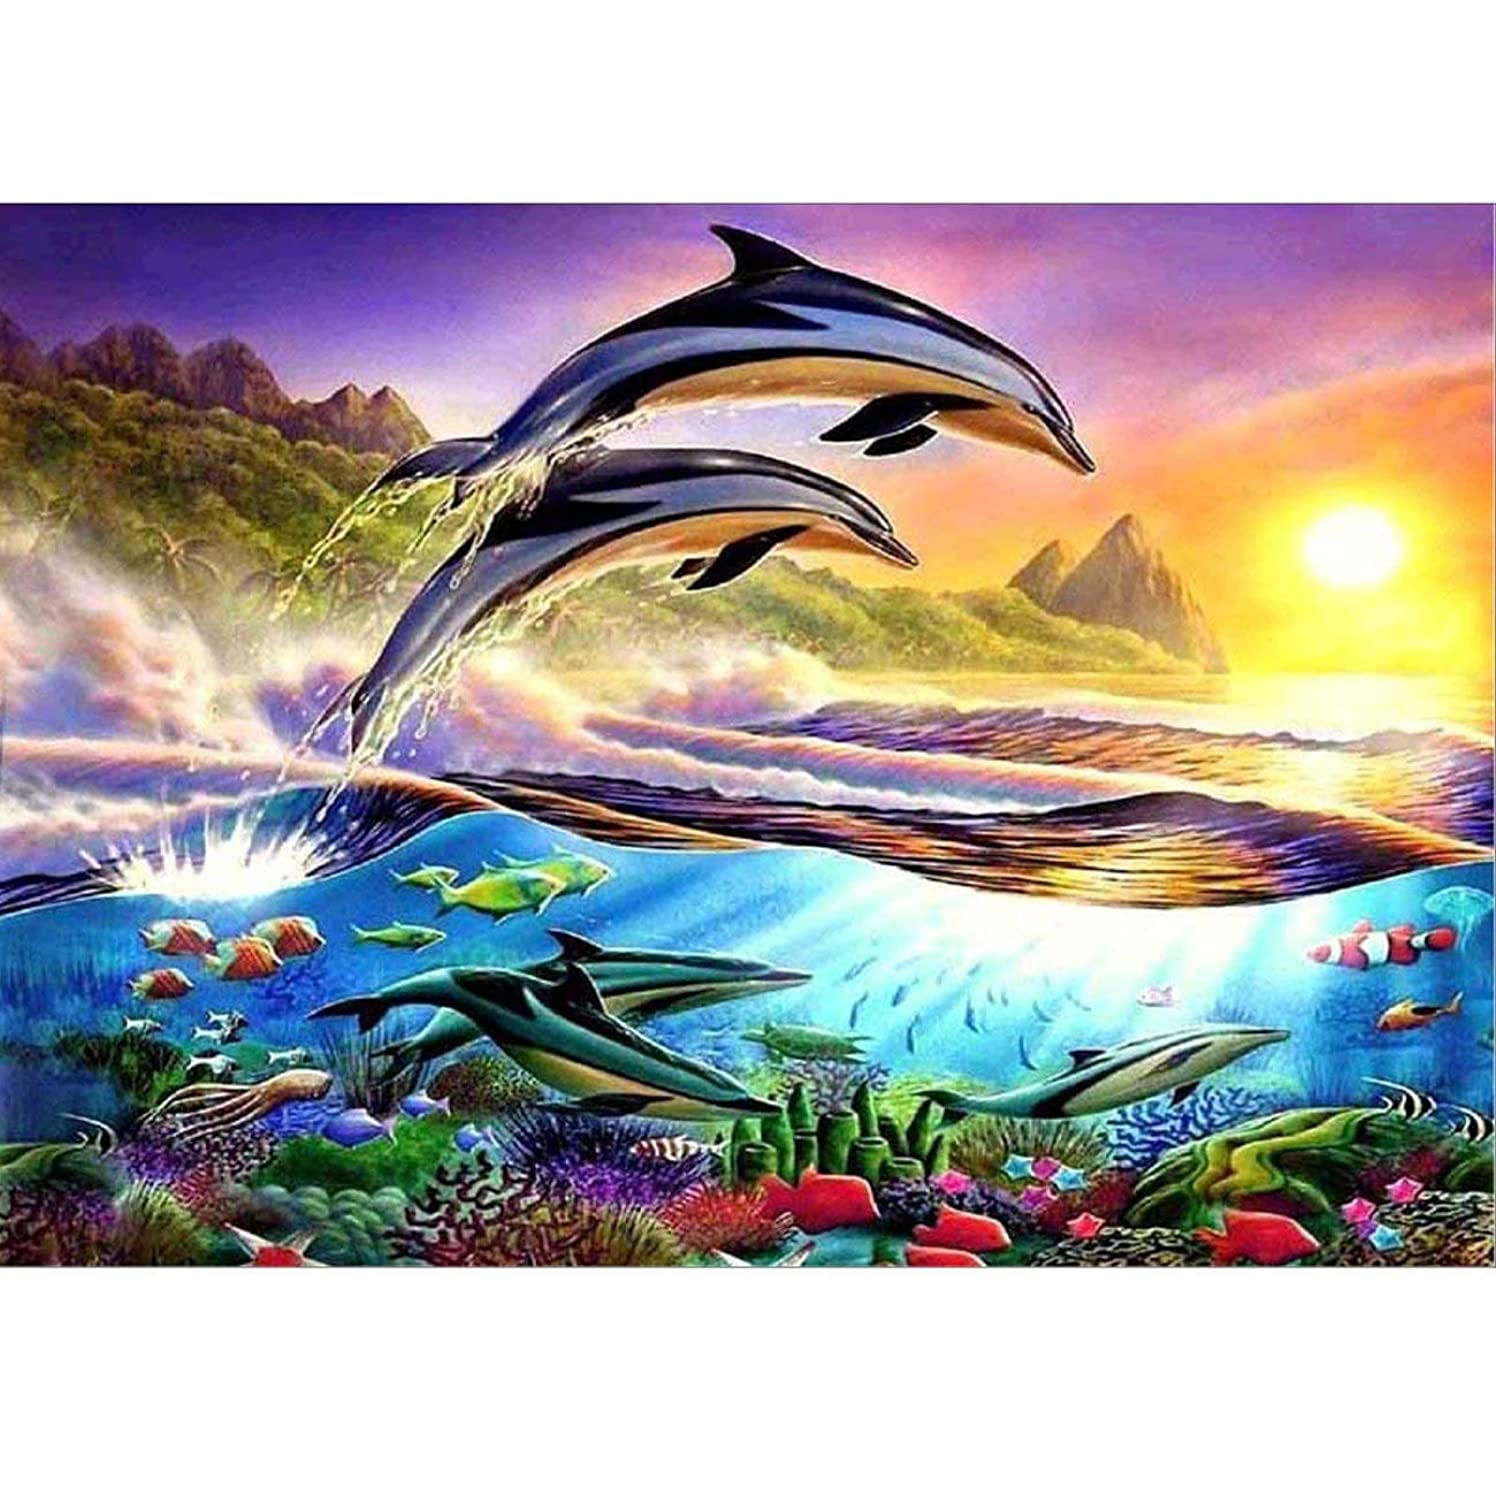 DIY Diamond Painting Kits for Adults, Jumping Dolphin Full Drill Rhinestone Embroidery Cross Stitch Supply Arts Craft Canvas Wall Decor 11.8x15.8 inch